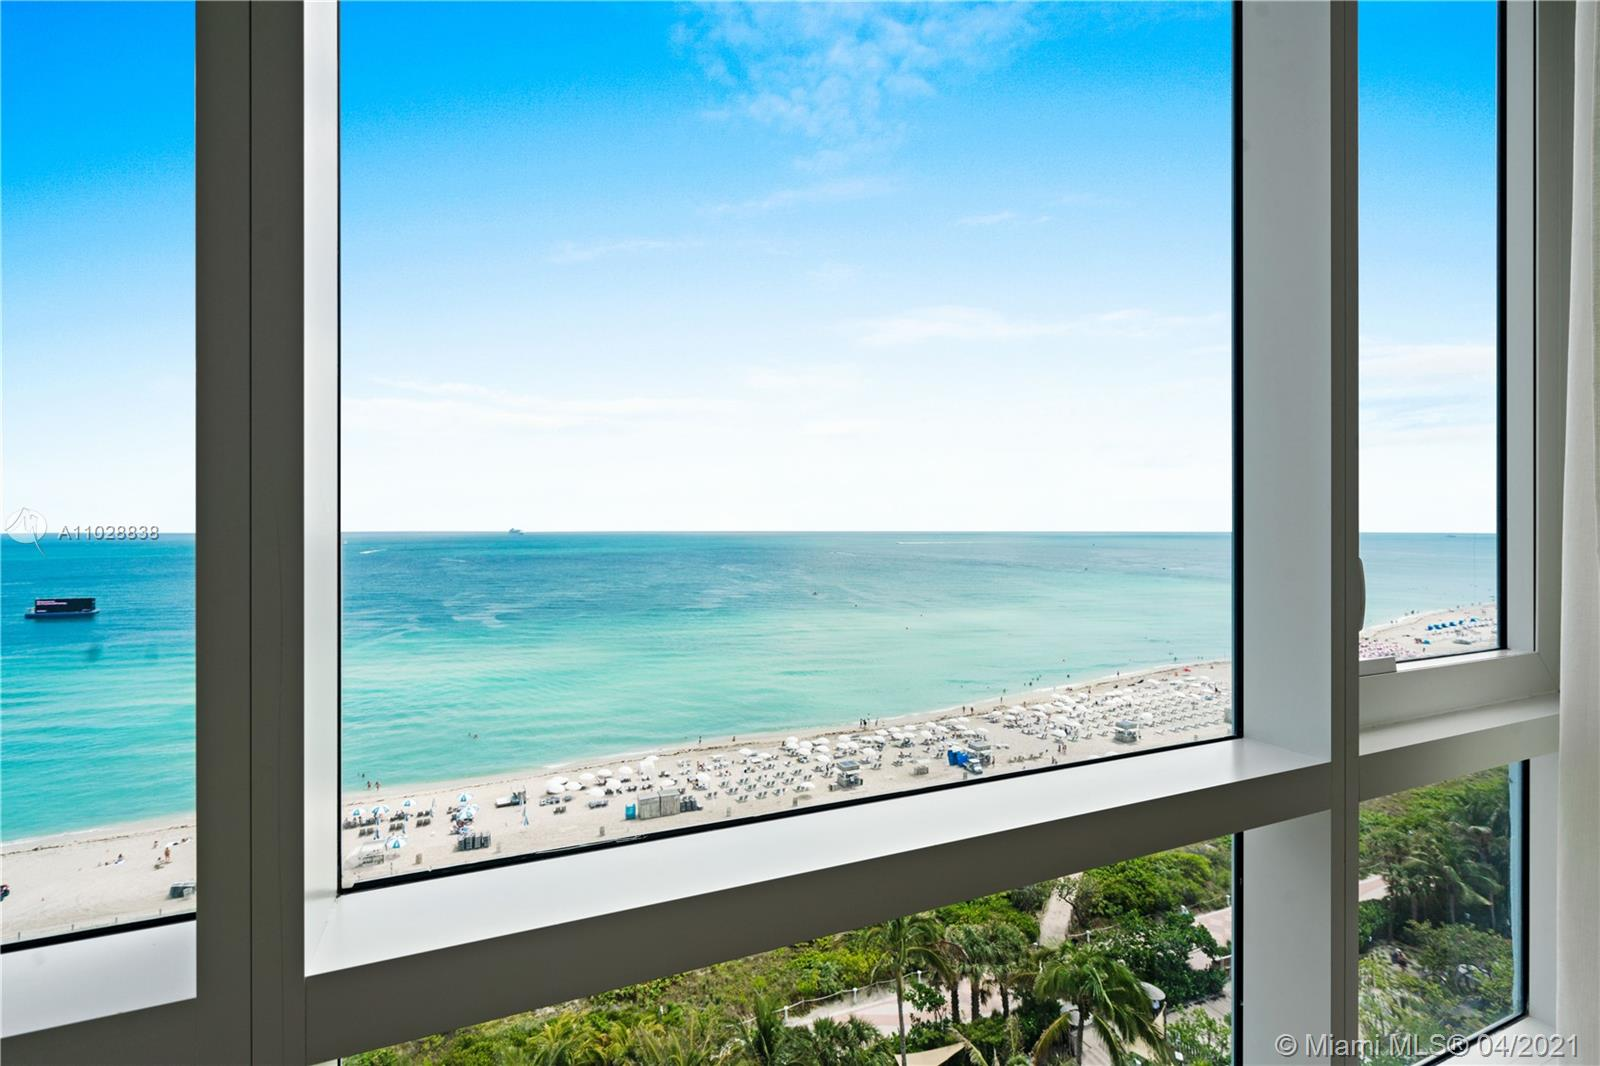 This beachfront private residence, located inside South Beach's eco-conscious 1 Hotel & Homes, is the perfect choice for that family vacation. Positioned on the Atlantic Oceanfront with 600-feet of direct beach access. This luxurious unit has a direct ocean view, environmentally friendly features & thoughtful touches throughout create a fusion of luxury and environmental consciousness. Enjoy the amenities of a 5-star resort with all the comforts of home.